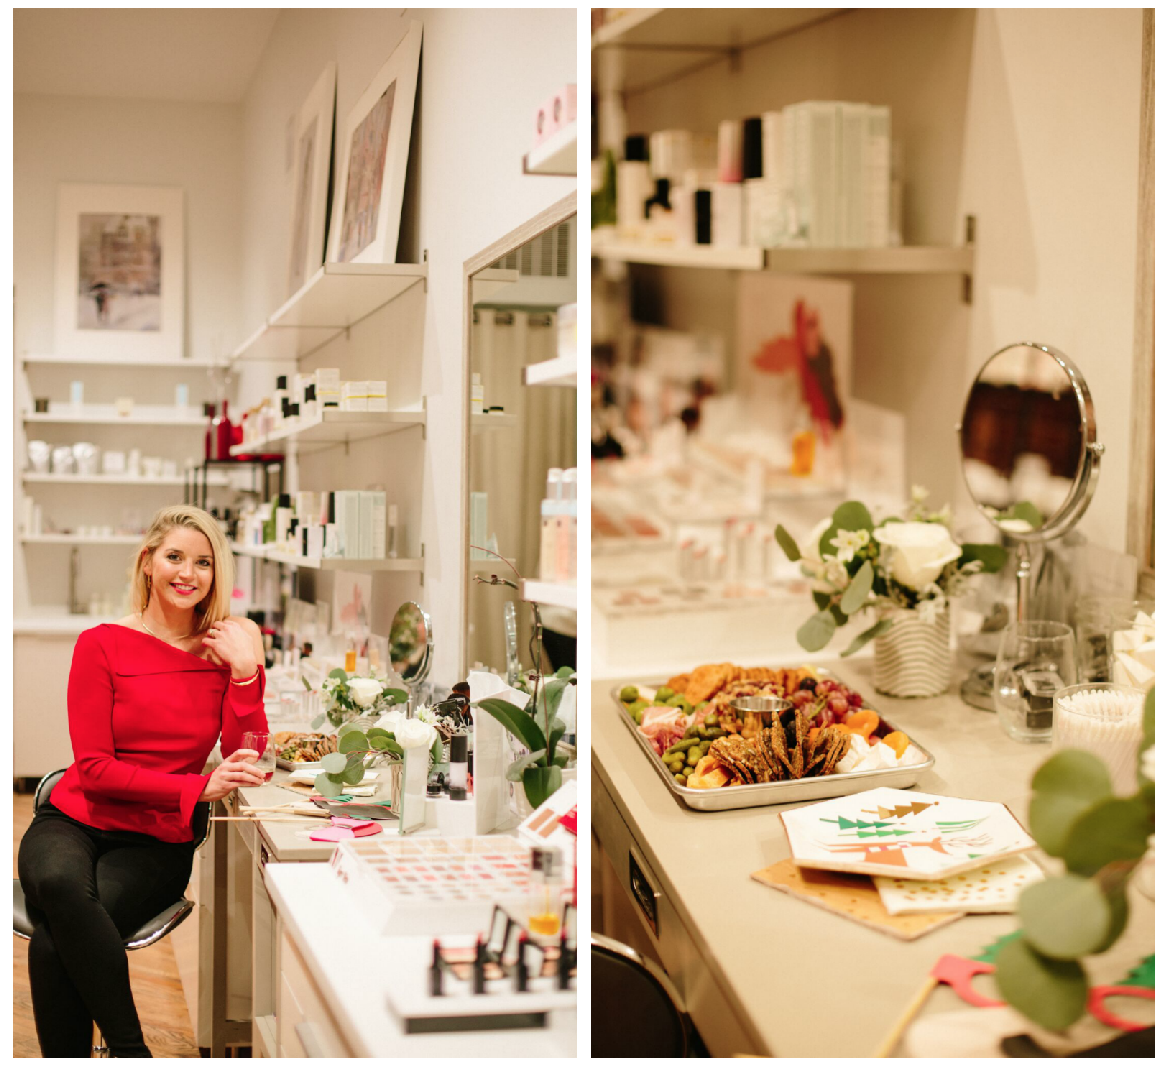 The every hostess aillea beauty holiday party and for Holiday party gift ideas for the hostess